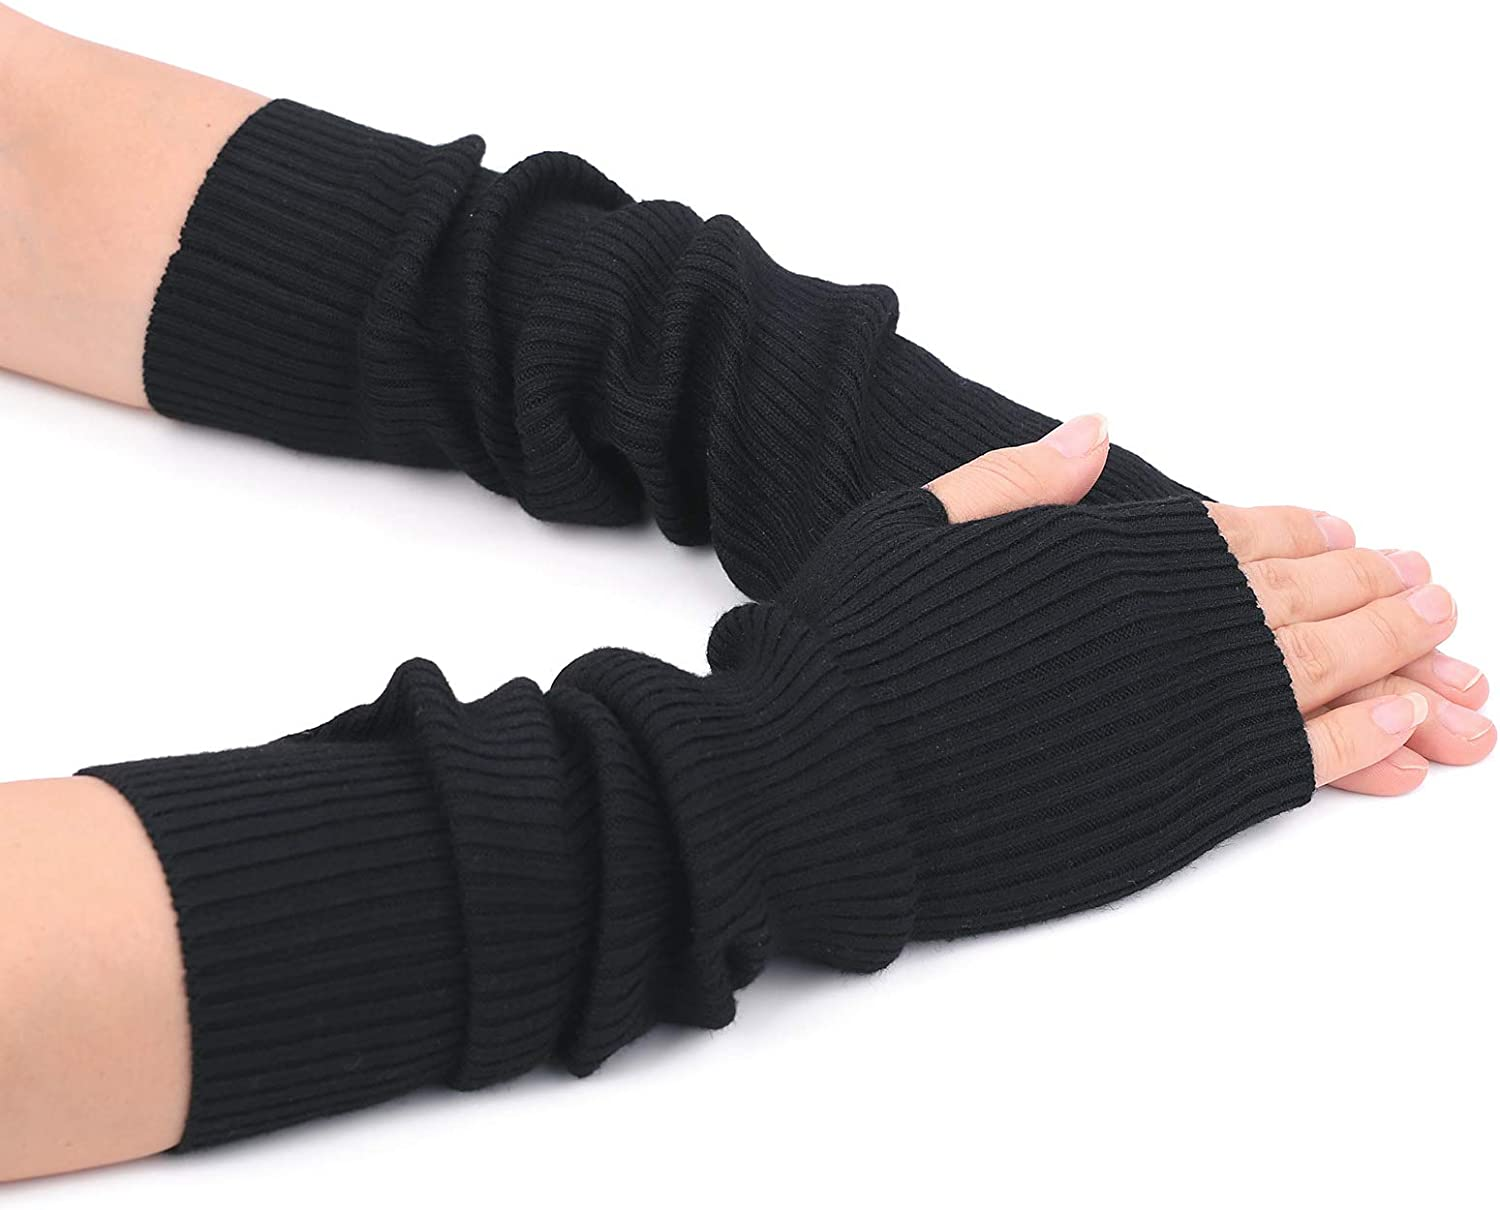 Flammi Women's Knit Arm Warmer Gloves Warm Cashmere Long Fingerless Mittens with Thumb Hole (Black) at  Women's Clothing store